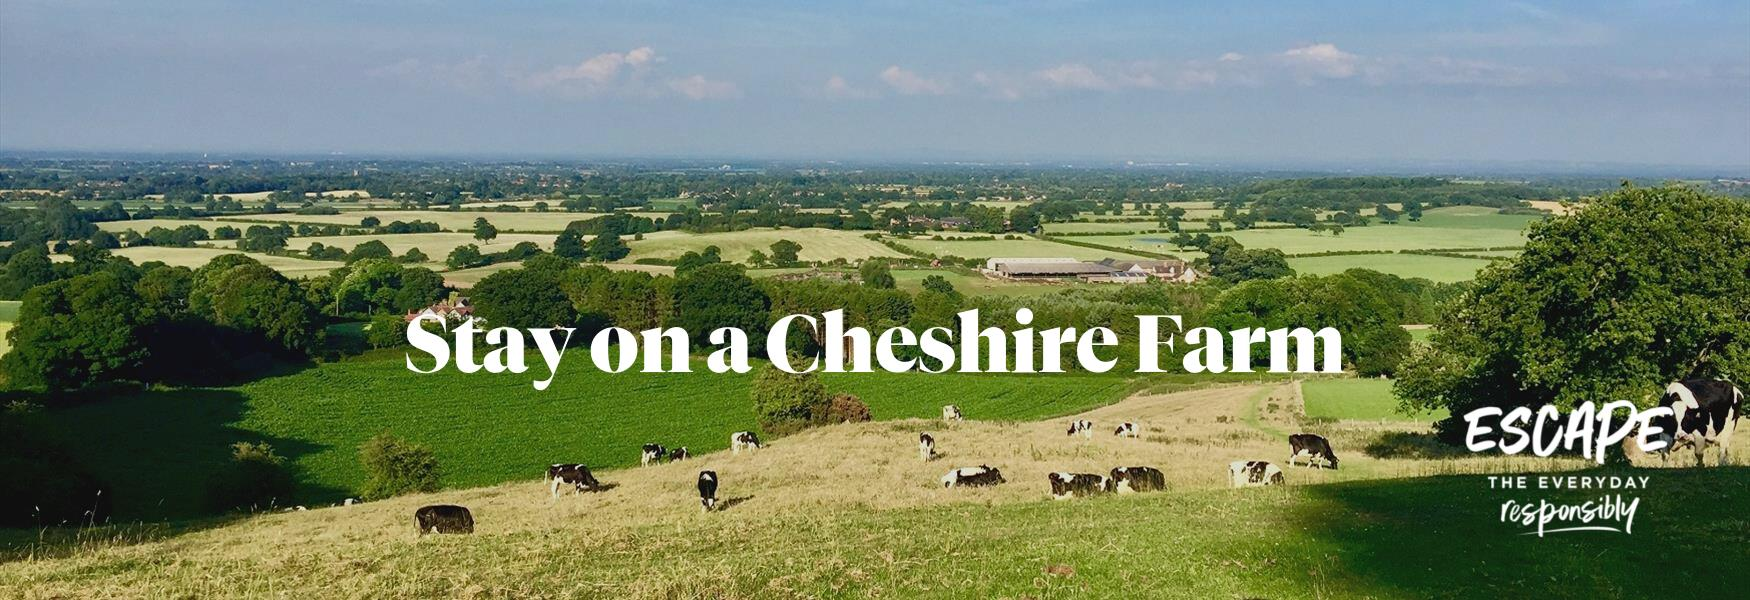 Stay on a Cheshire Farm